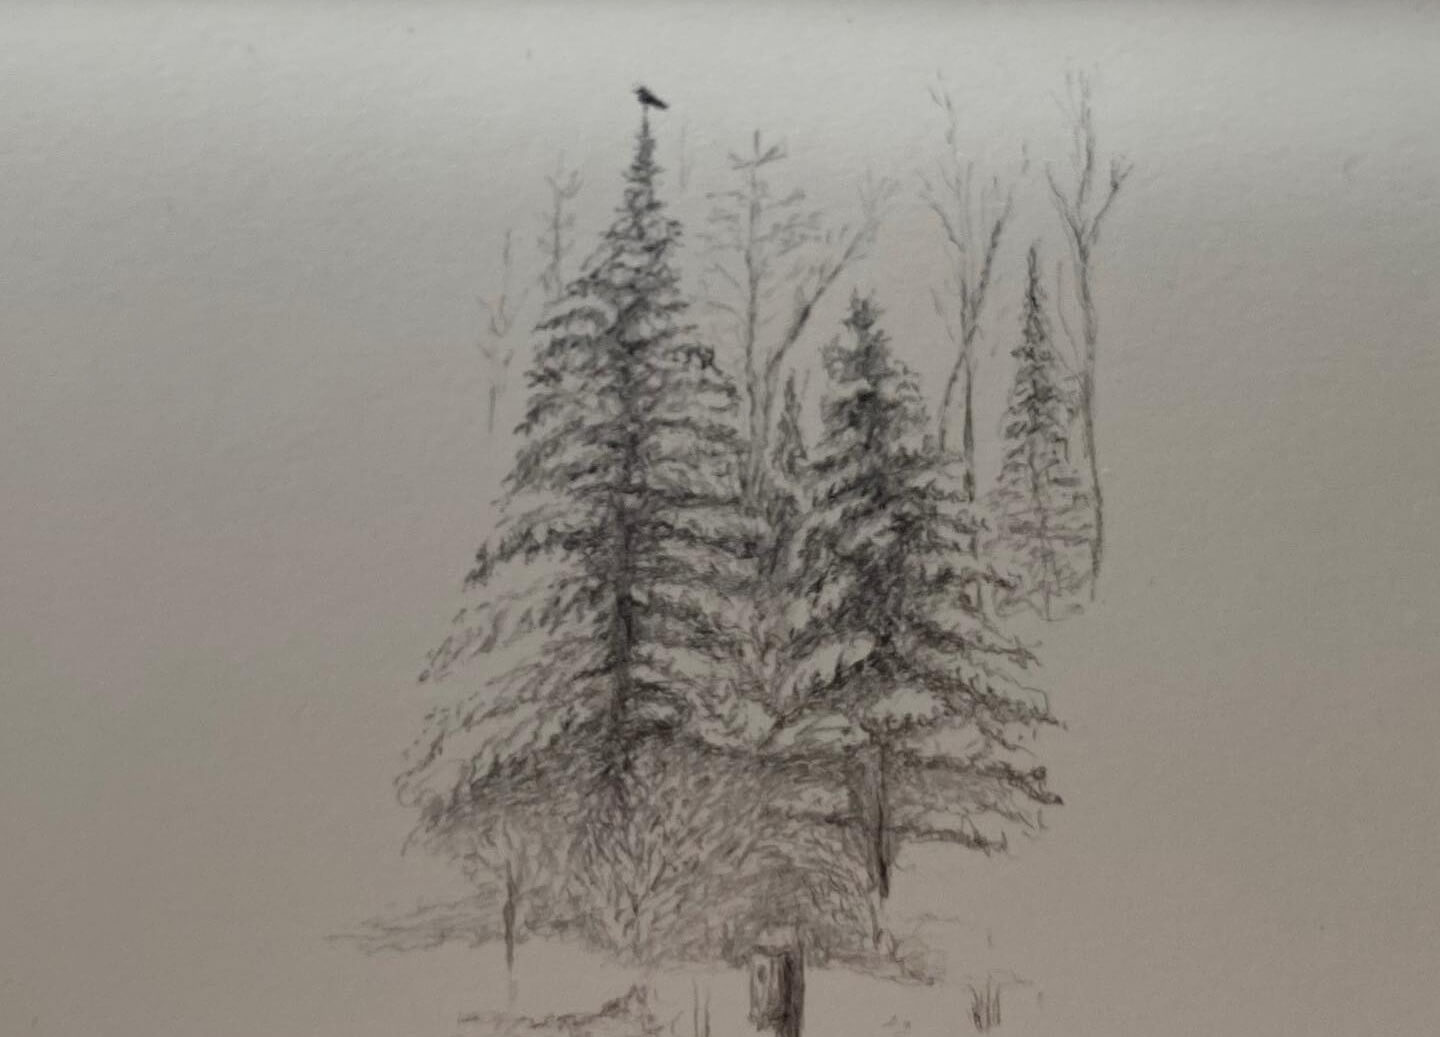 Winter Wonders: Hike-n-Sketch